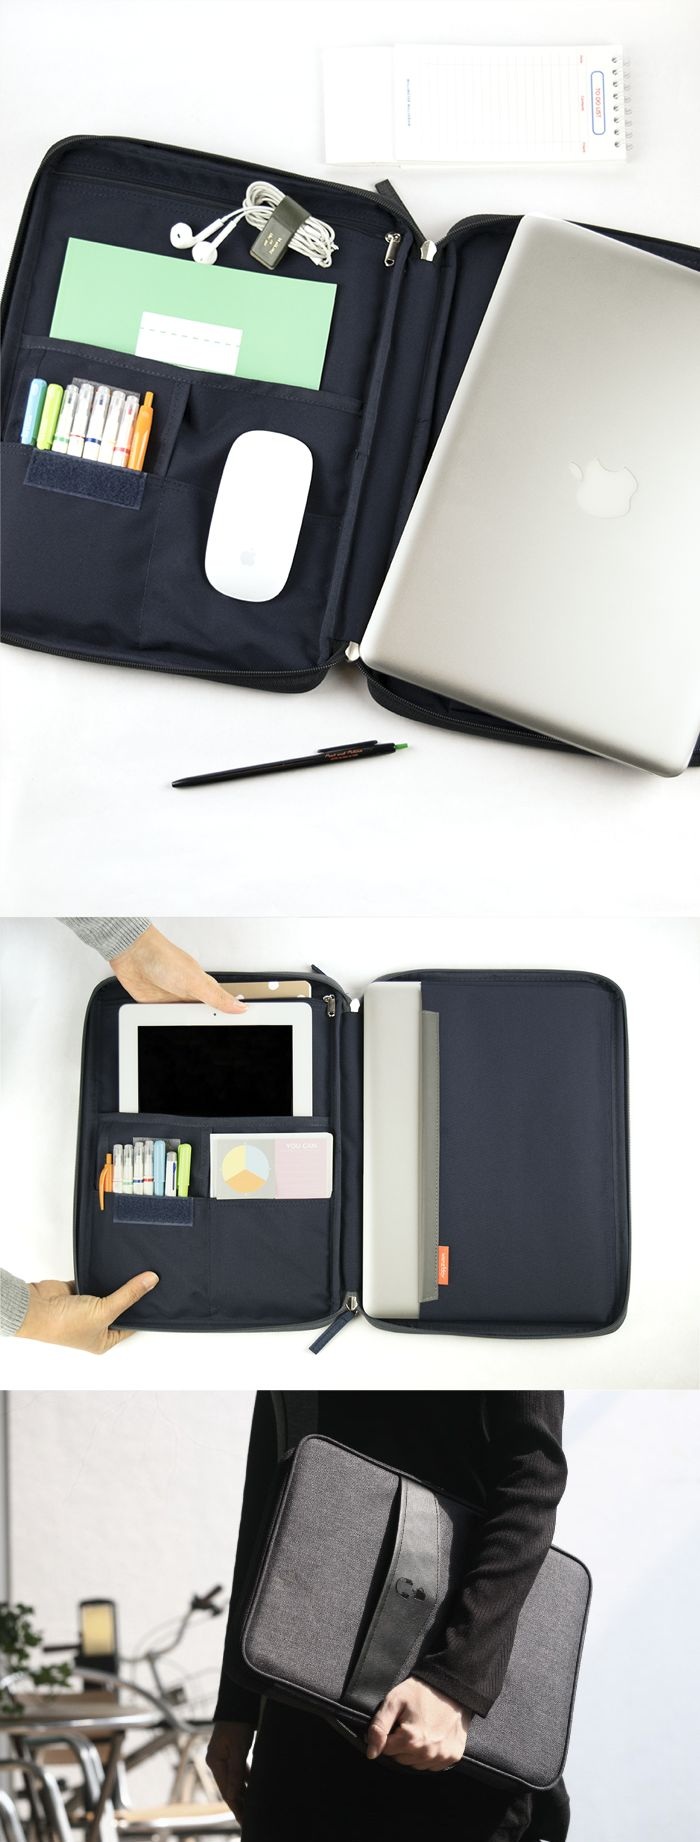 "Get ready for the MVP of Organization! The Better Together 13"" Laptop Pouch v2 makes it sleek & simple. The right side has a pocket for your laptop & the other side has a zippered pocket for chargers, a large open pocket for a tablet, 2 small pockets for pens & earbuds. That's not all, there is also an open pocket on the front for your papers as well as a zippered pocket in the back. The handle allows easy transport & the layers of cushioning ensure flawless protection. See more at…"